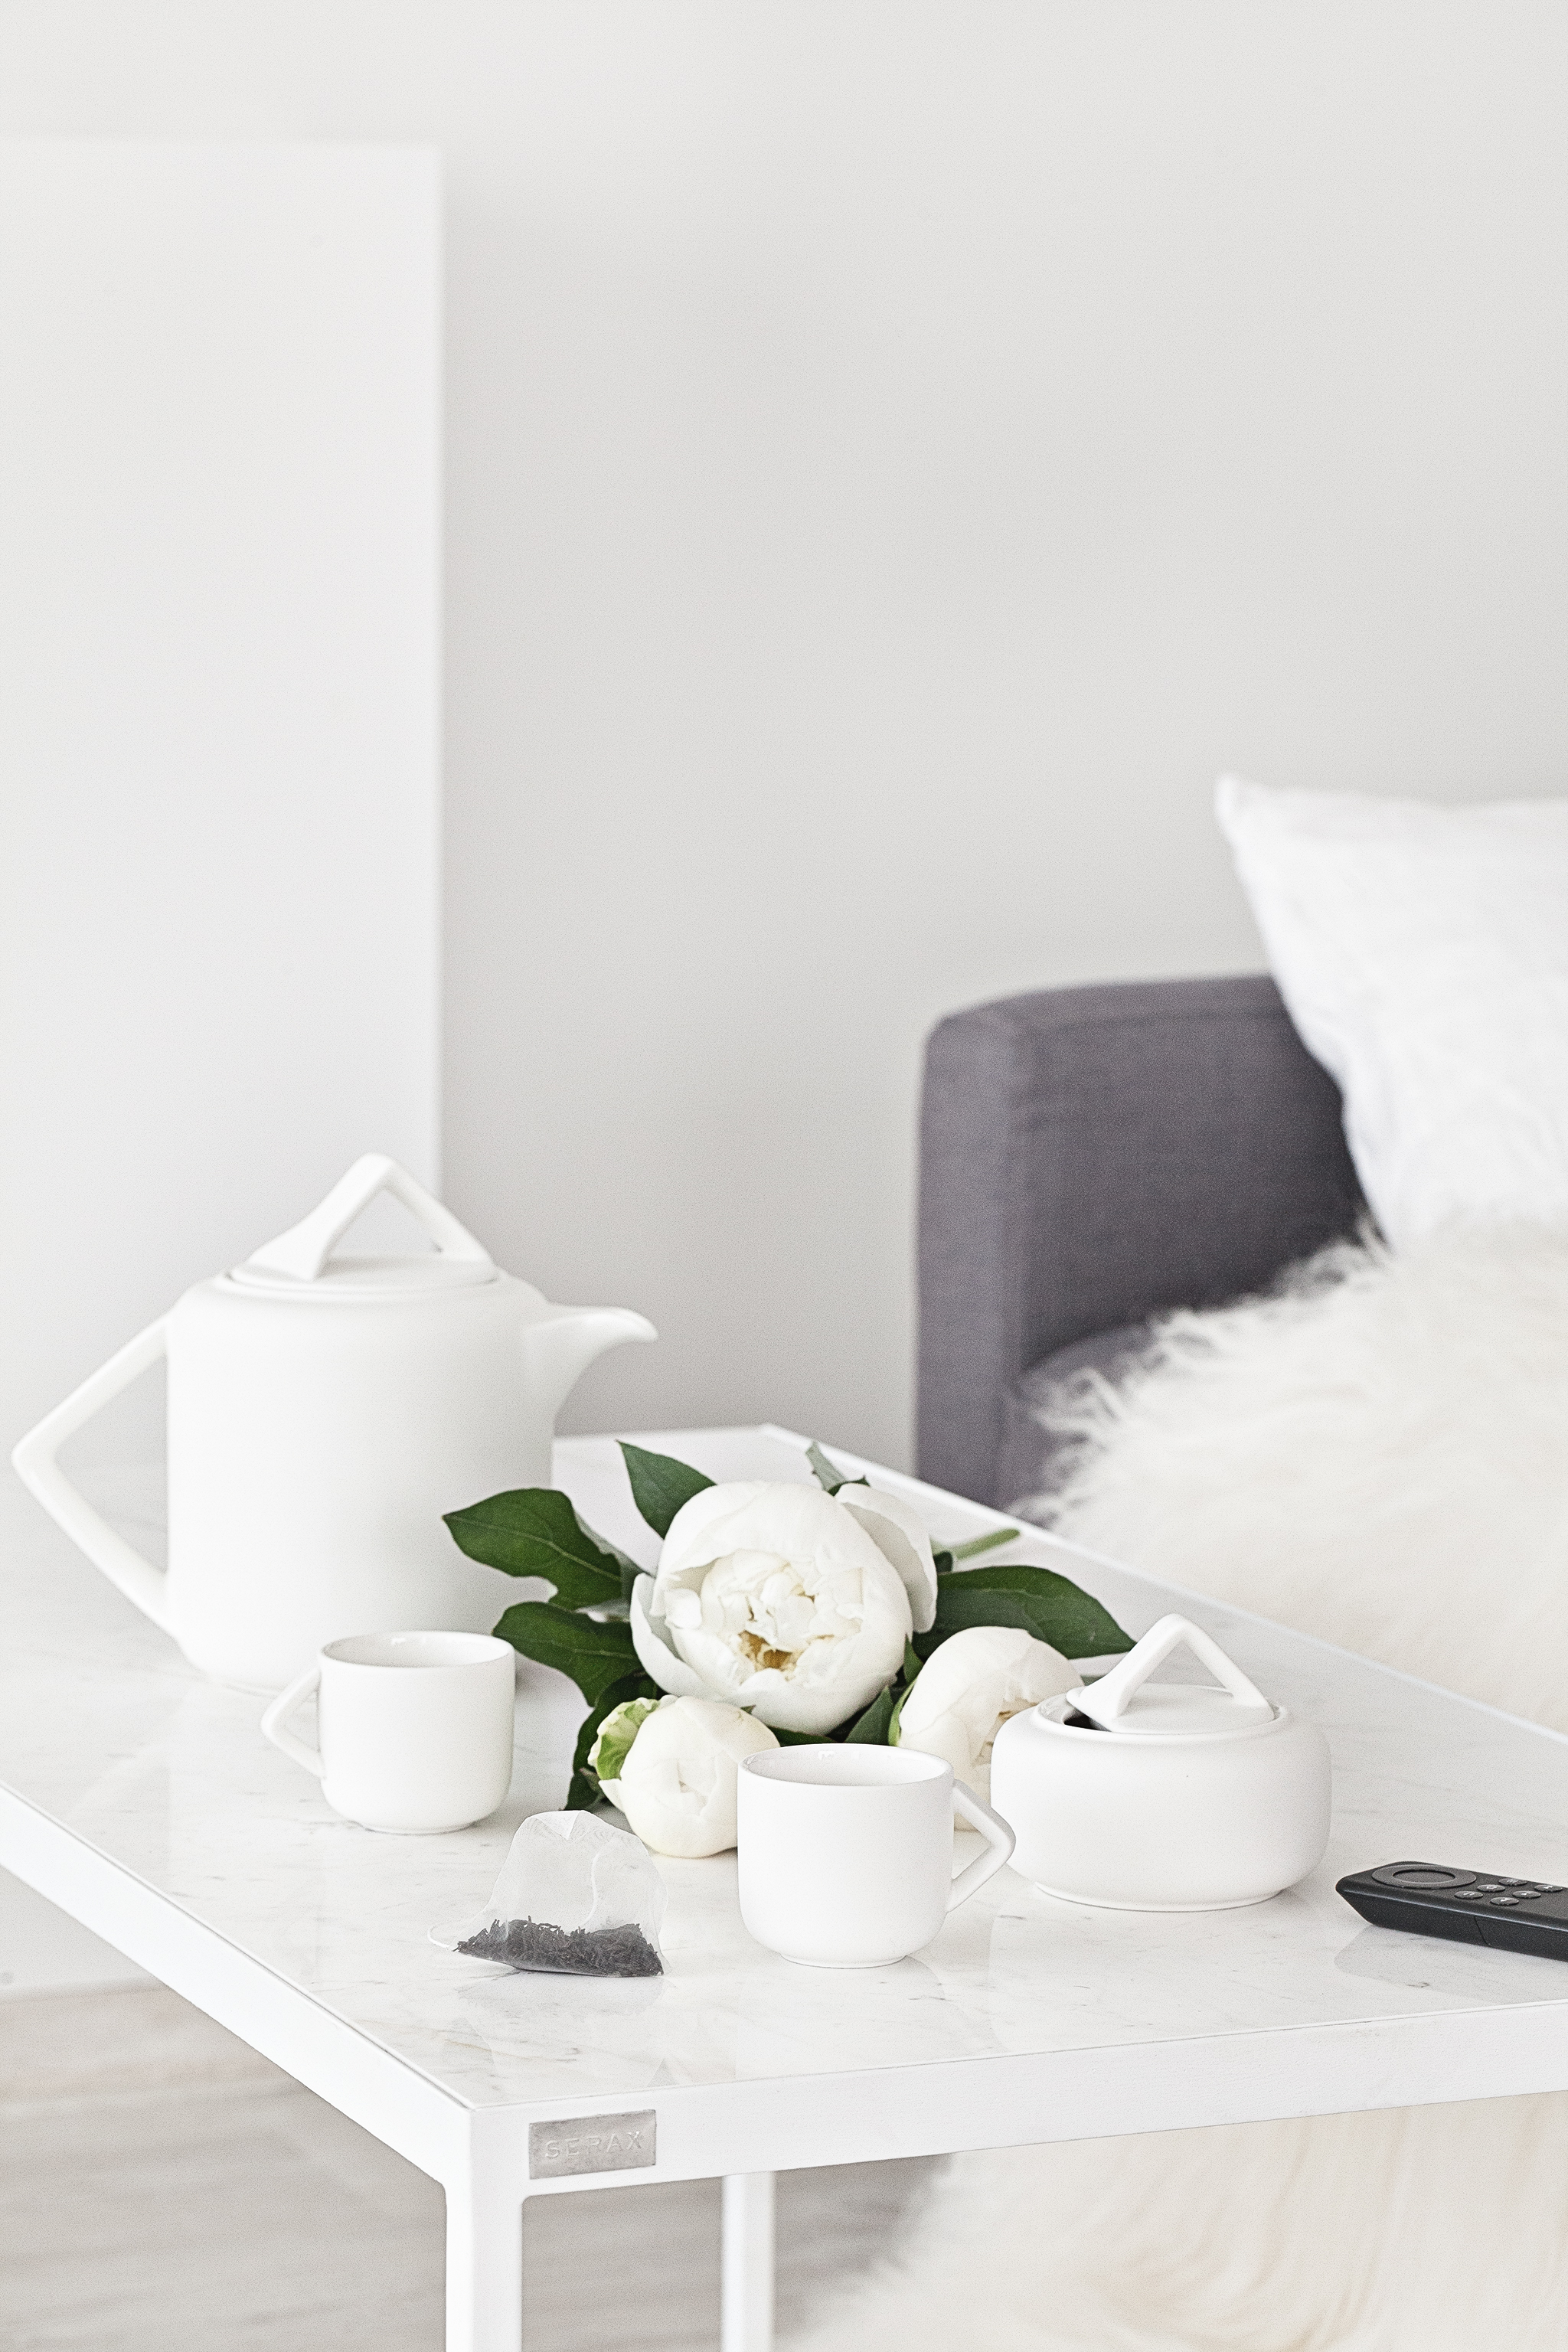 White Marble Table & White Ceramic Tea/Coffee Set from   Serax Belgium  .